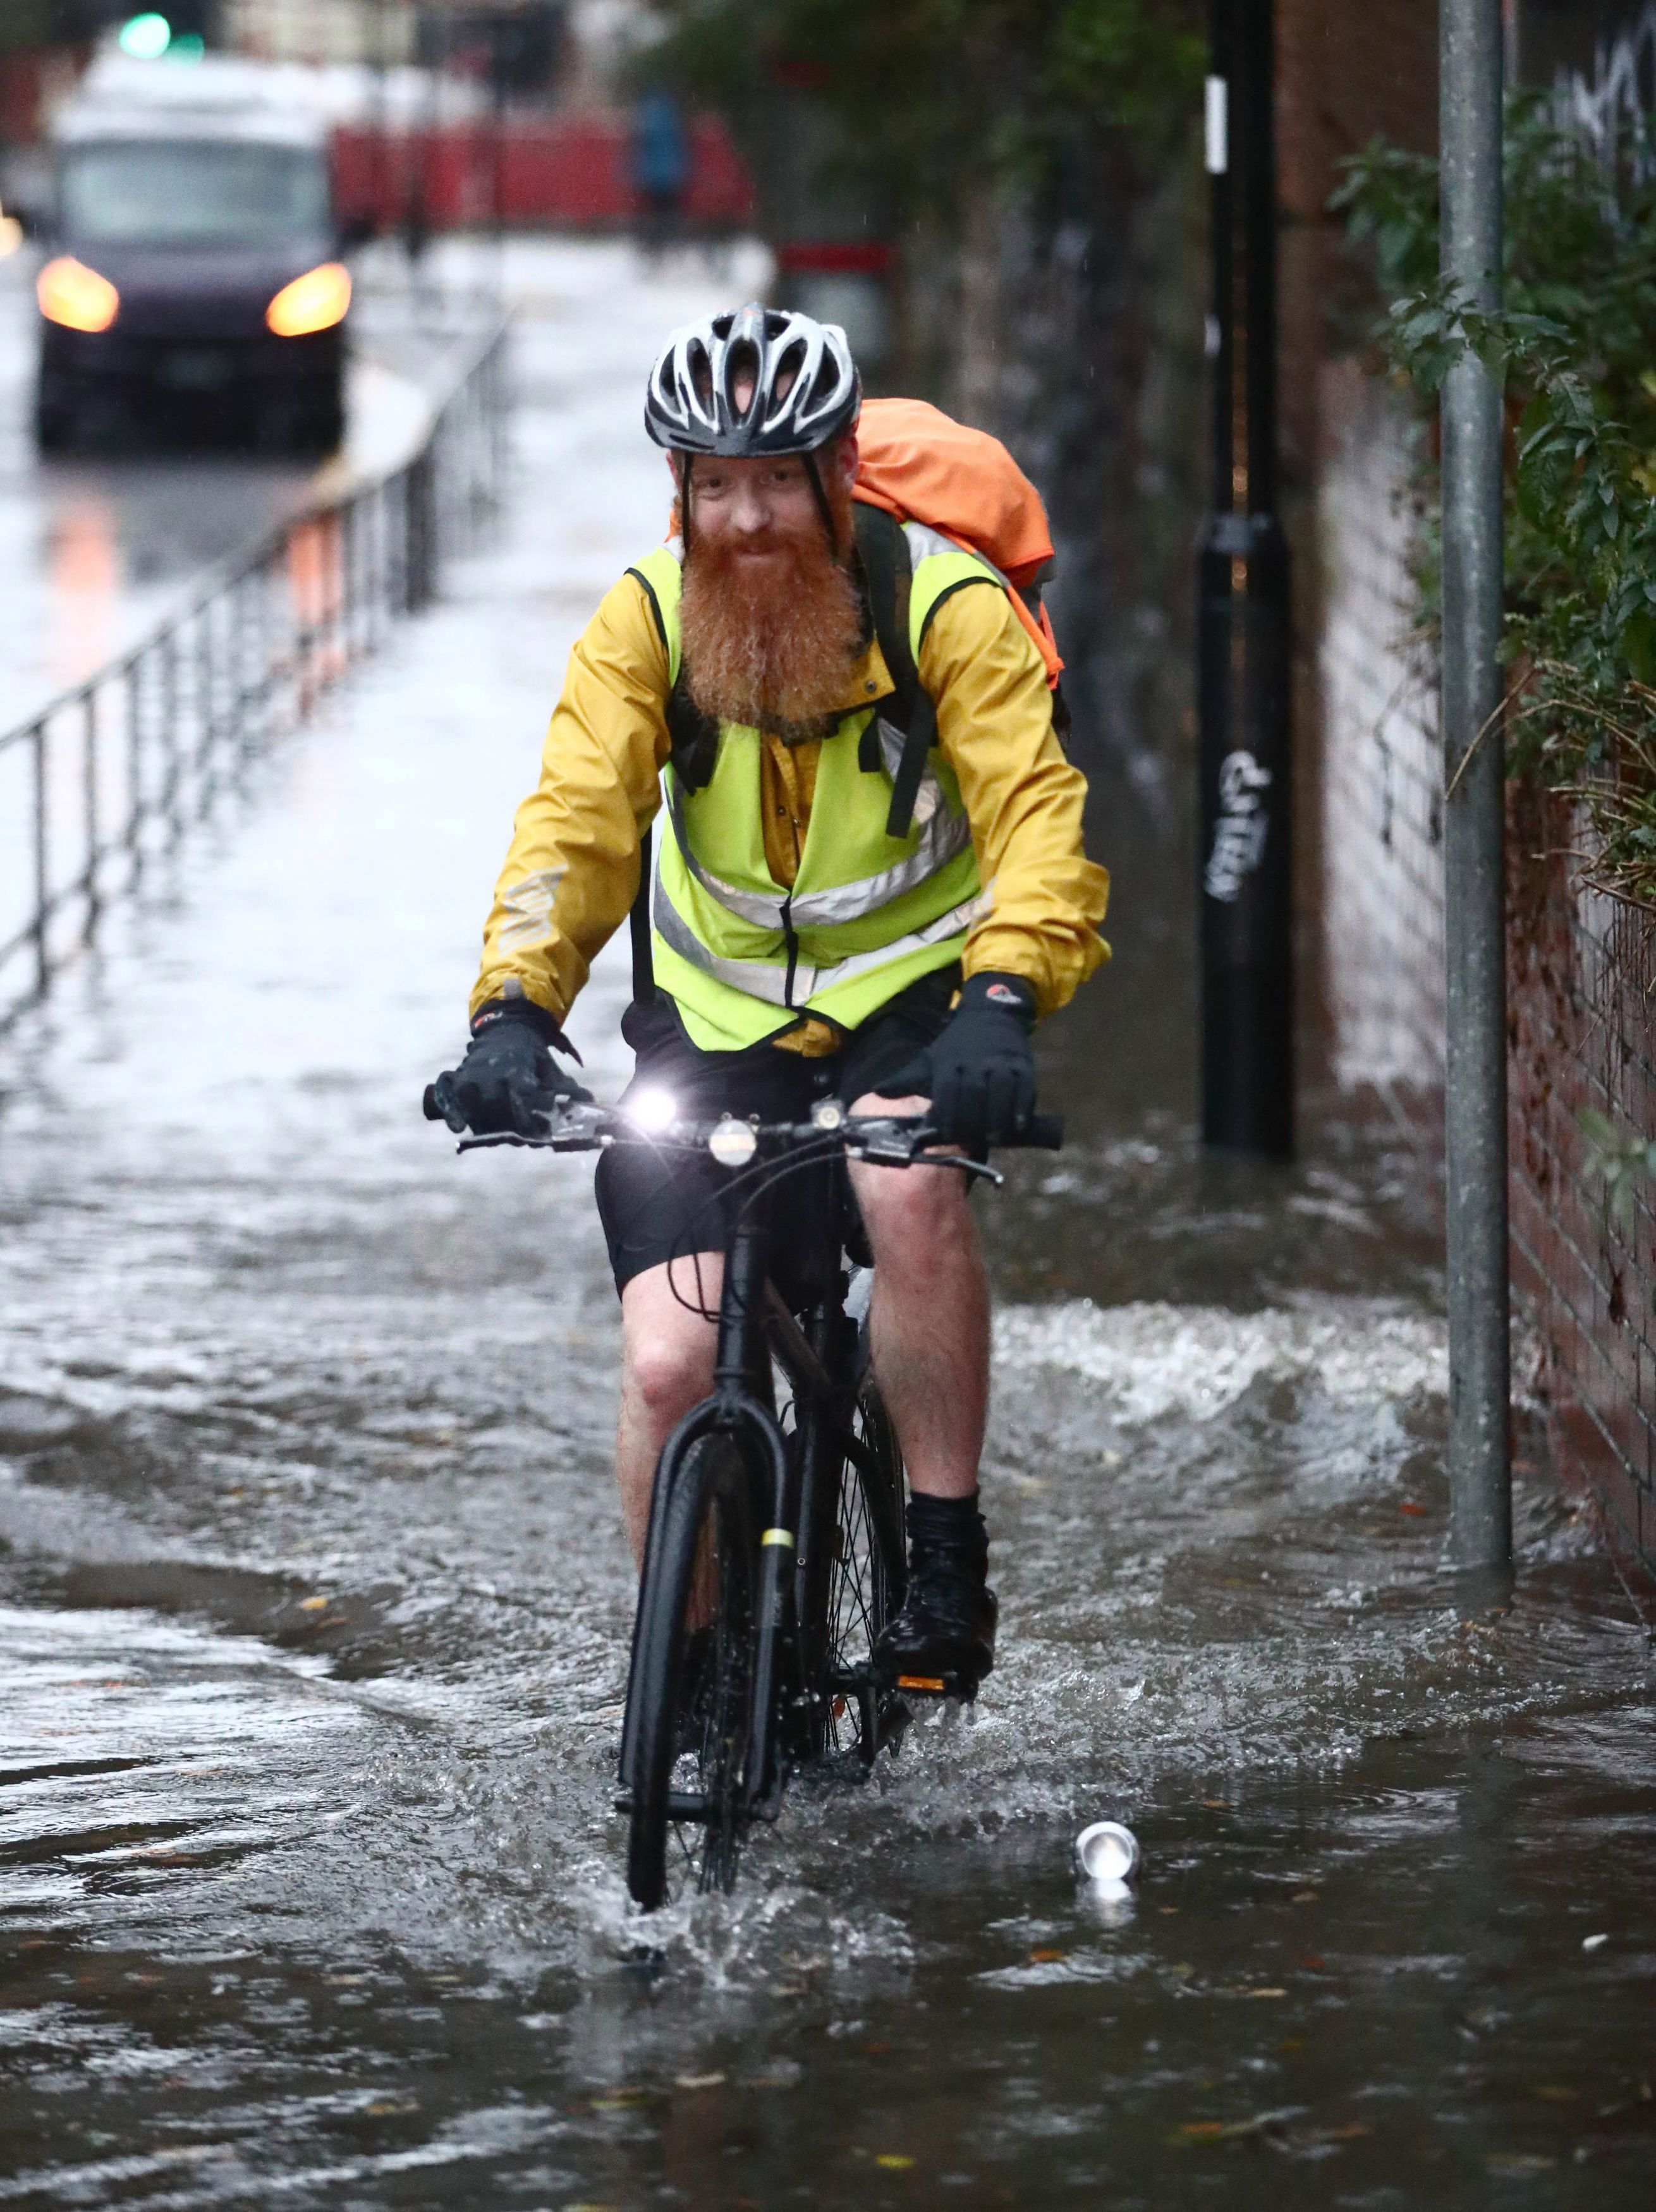 A hardy cyclist in Sheffield takes on the flood water